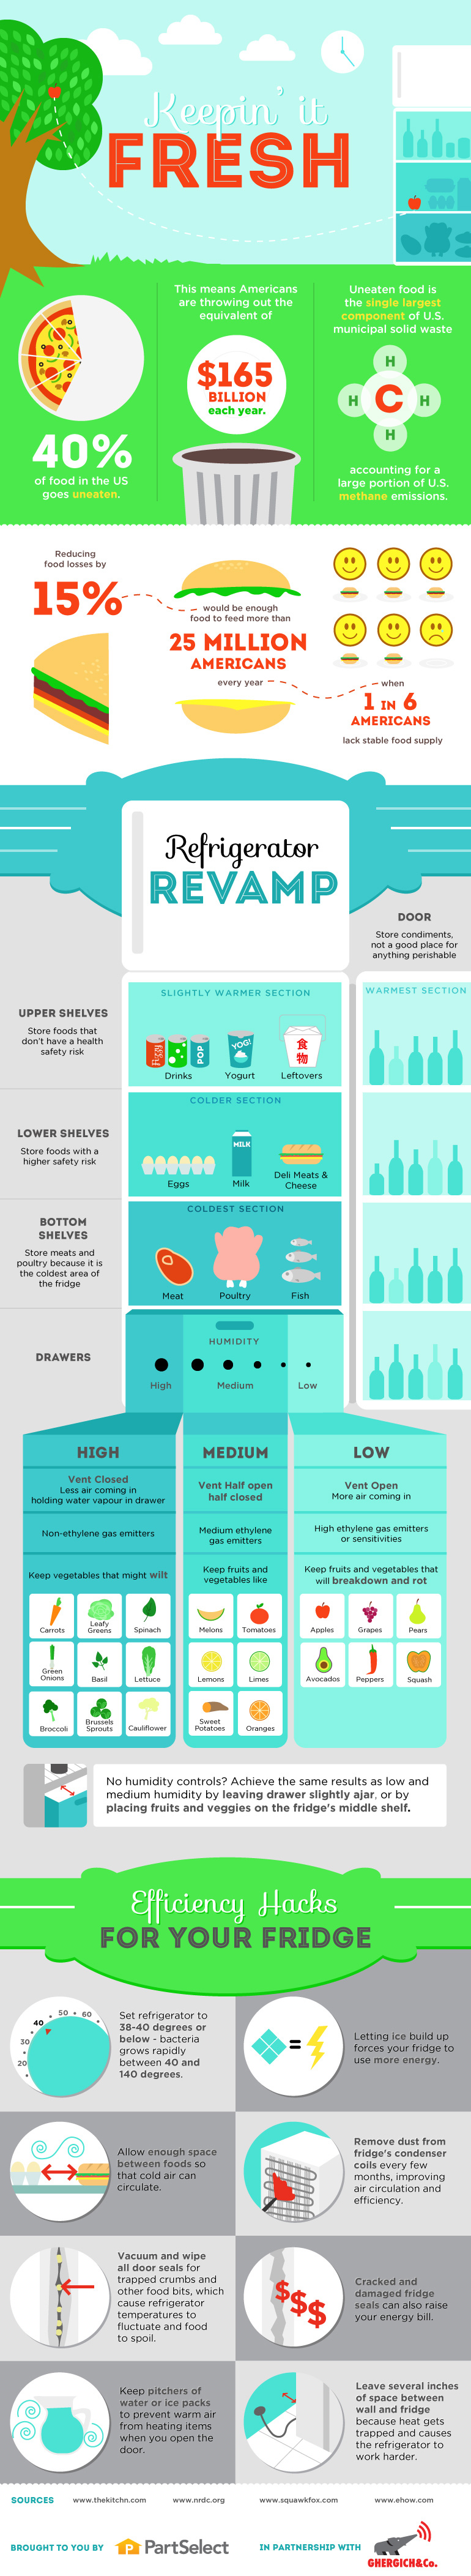 Keepin' it Fresh: Refrigerator Revamp Guide